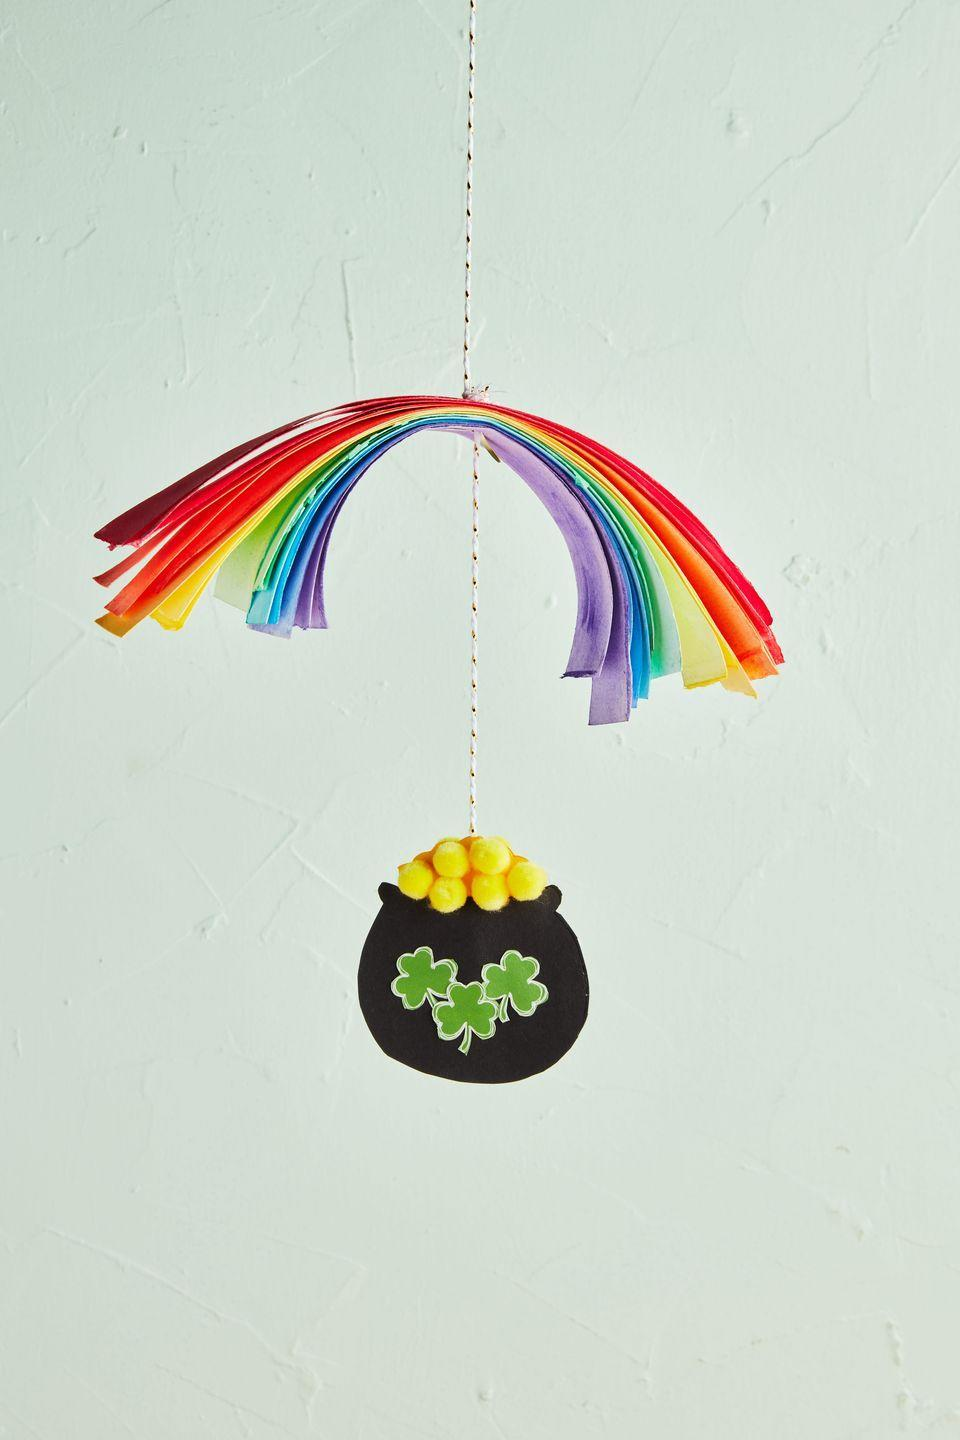 """<p>Gold, or mini yellow pom-poms? Either way, craft this DIY hanging mobile and lots of luck and riches will surely come your way!<br><br><strong>To make:</strong> Cut 1-inch-wide strips of paper from colored craft paper. Use a hole-punch to make a hole in the middle of each strip of paper; stack paper in the order of the rainbow. Thread a piece of twine through holes, knotting it just above and below the paper to hold paper in place. Fold a piece of black craft paper in half and cut out a pot shape, so that you have two identical pieces. Cut out two dome-shaped pieces of yellow craft paper and sandwich between the black pieces, gluing everything together. Glue mini yellow pom-poms to the yellow paper. Punch a hole at the top of the yellow dome, and thread twine through, securing with a knot. Cut out mini clovers from green craft paper and glue to the front and back of the pot; outline with a white pen if desired.<br><br><a class=""""link rapid-noclick-resp"""" href=""""https://www.amazon.com/Sheets-Origami-Colors-Stationery-Perfect/dp/B07P53JWP6/ref=sr_1_1?tag=syn-yahoo-20&ascsubtag=%5Bartid%7C10050.g.4035%5Bsrc%7Cyahoo-us"""" rel=""""nofollow noopener"""" target=""""_blank"""" data-ylk=""""slk:SHOP PAPER"""">SHOP PAPER</a></p>"""